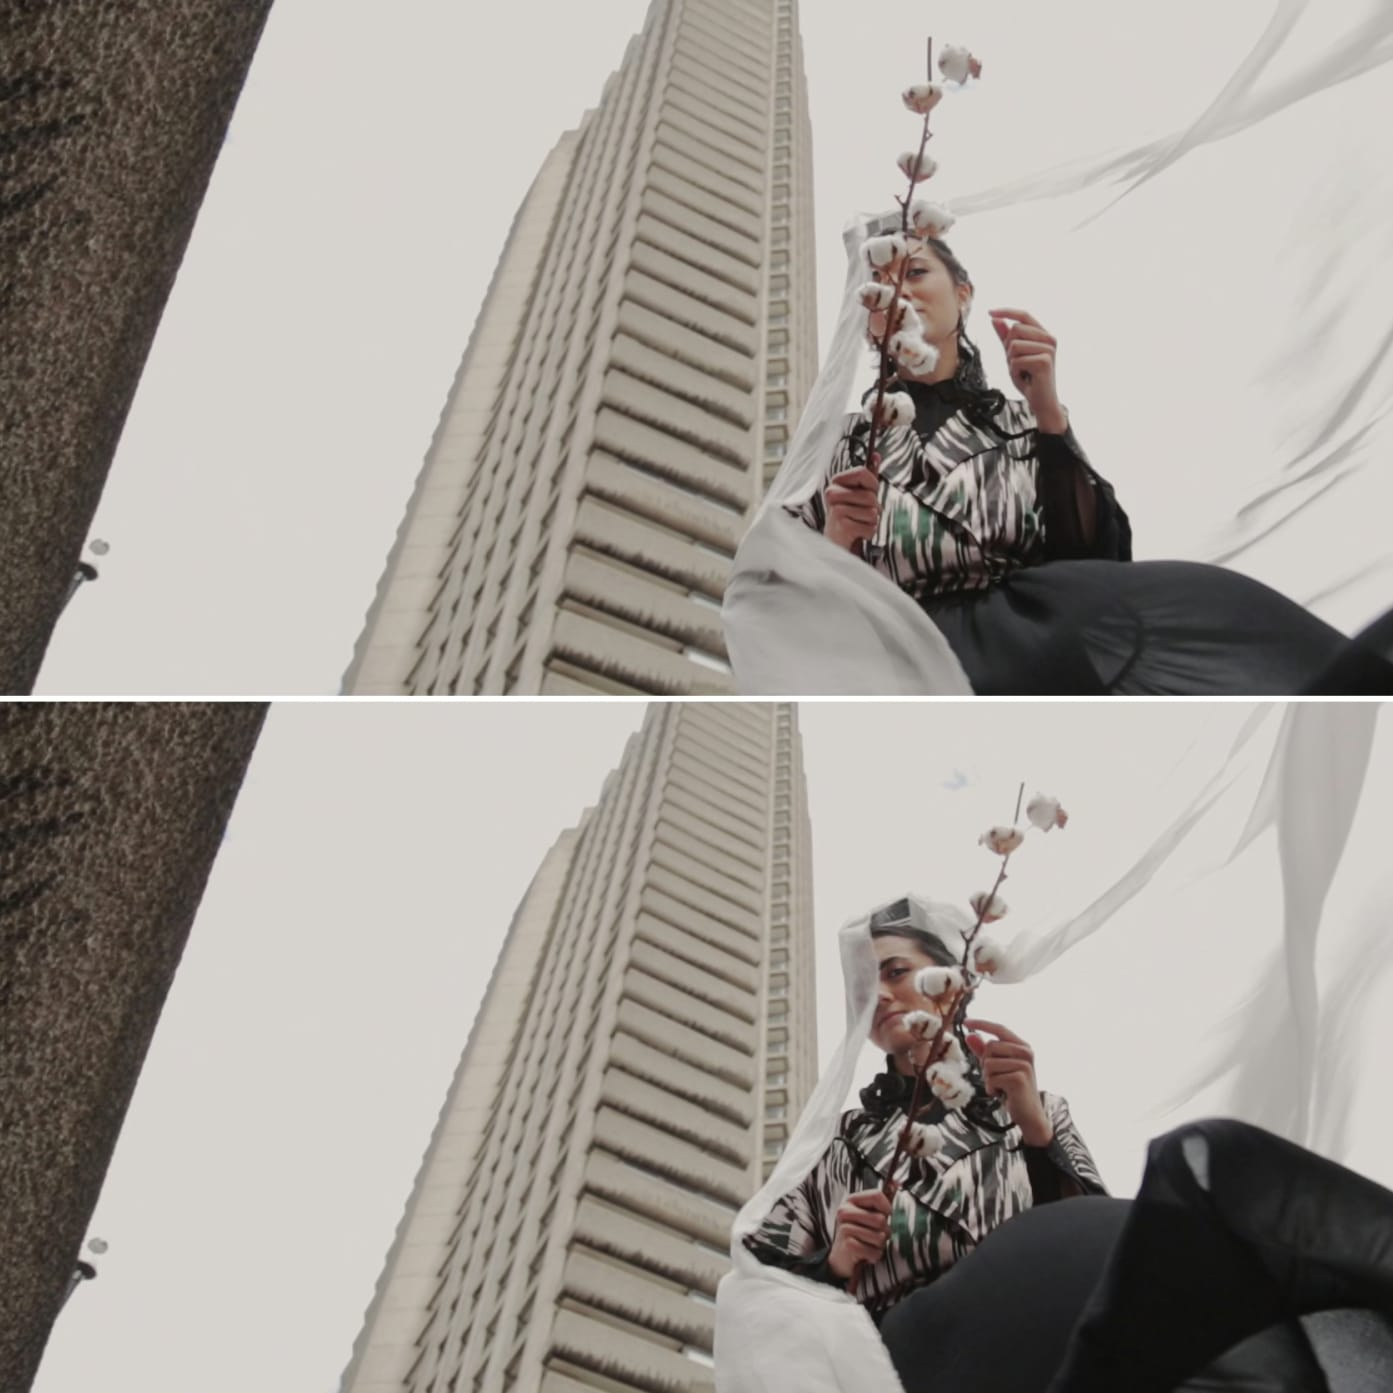 A person stood next to a tower block holding a cotton stem